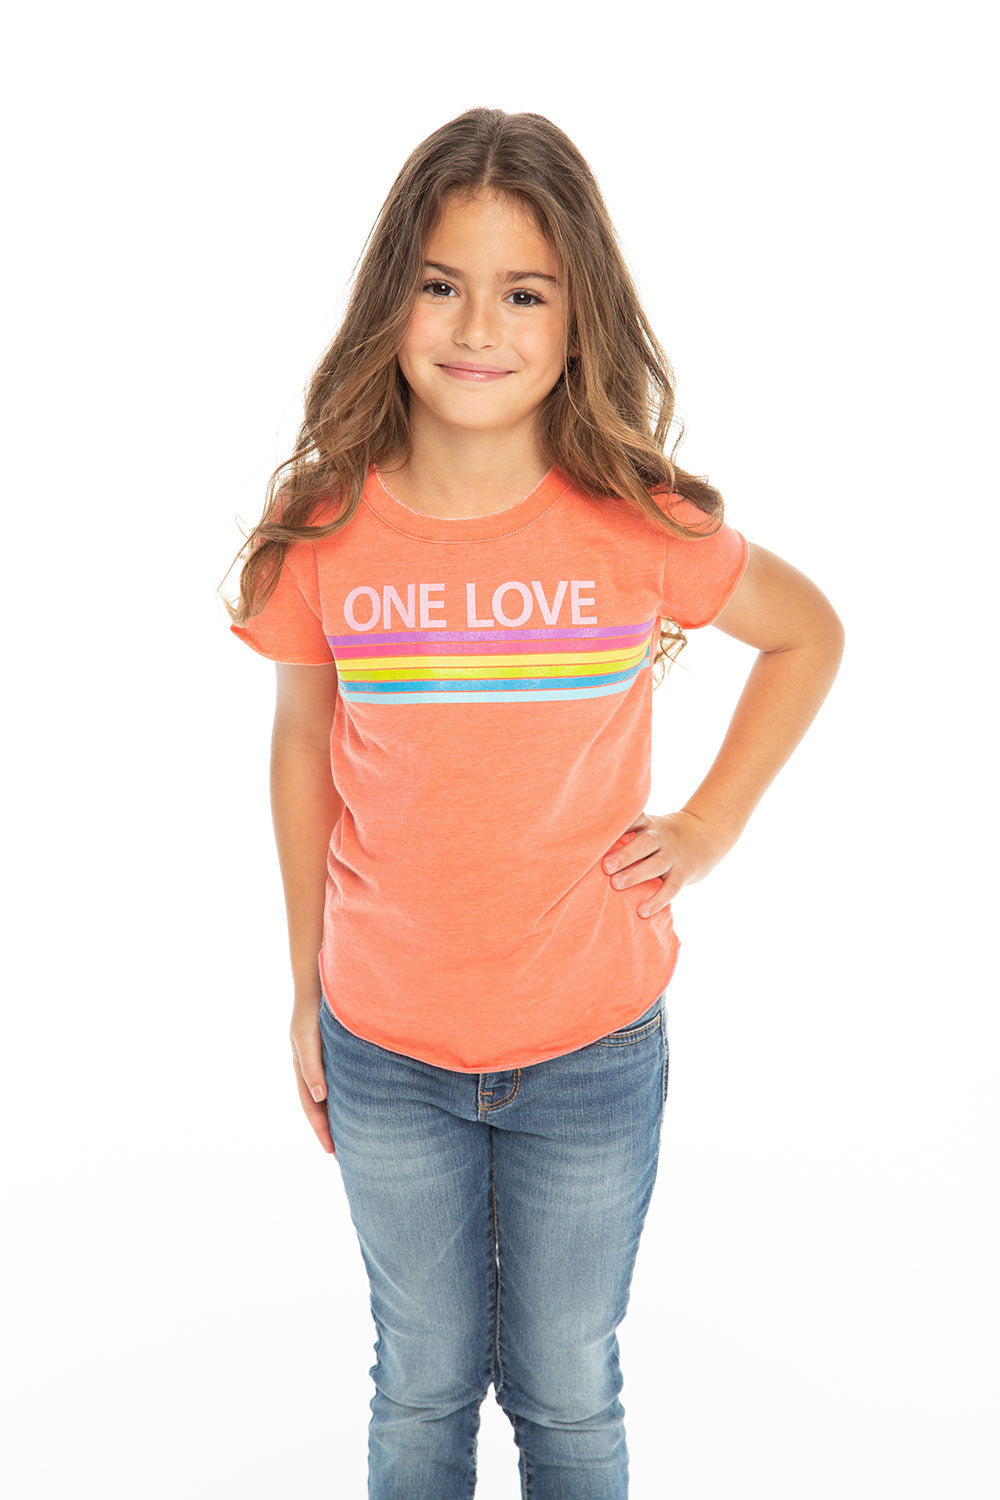 One Love Girls chaserbrand4.myshopify.com